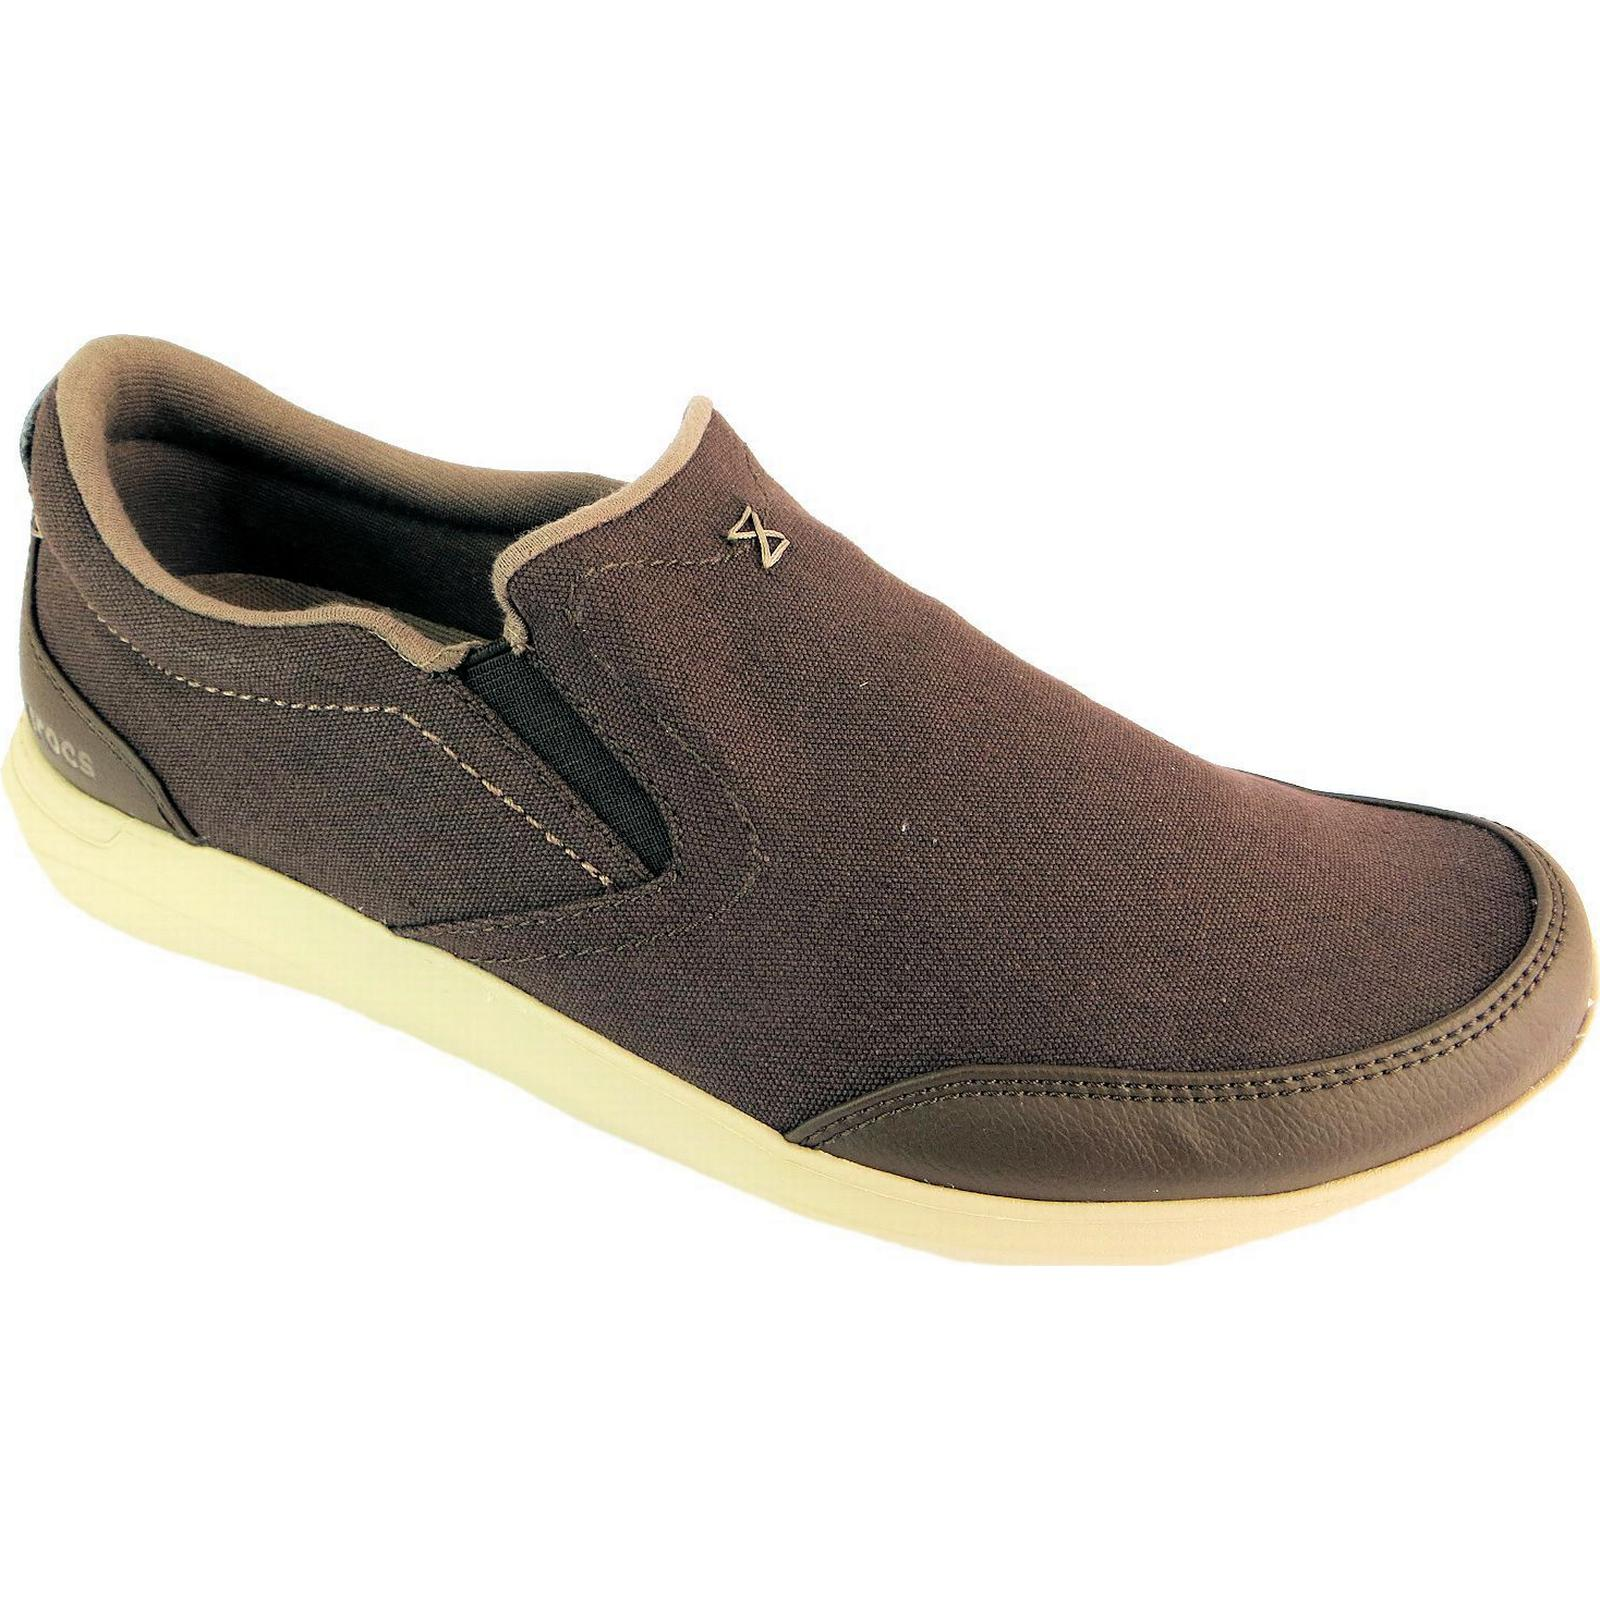 Mr/Ms:Crocs Kinsale Loafers:International Big Name Name Name 774421